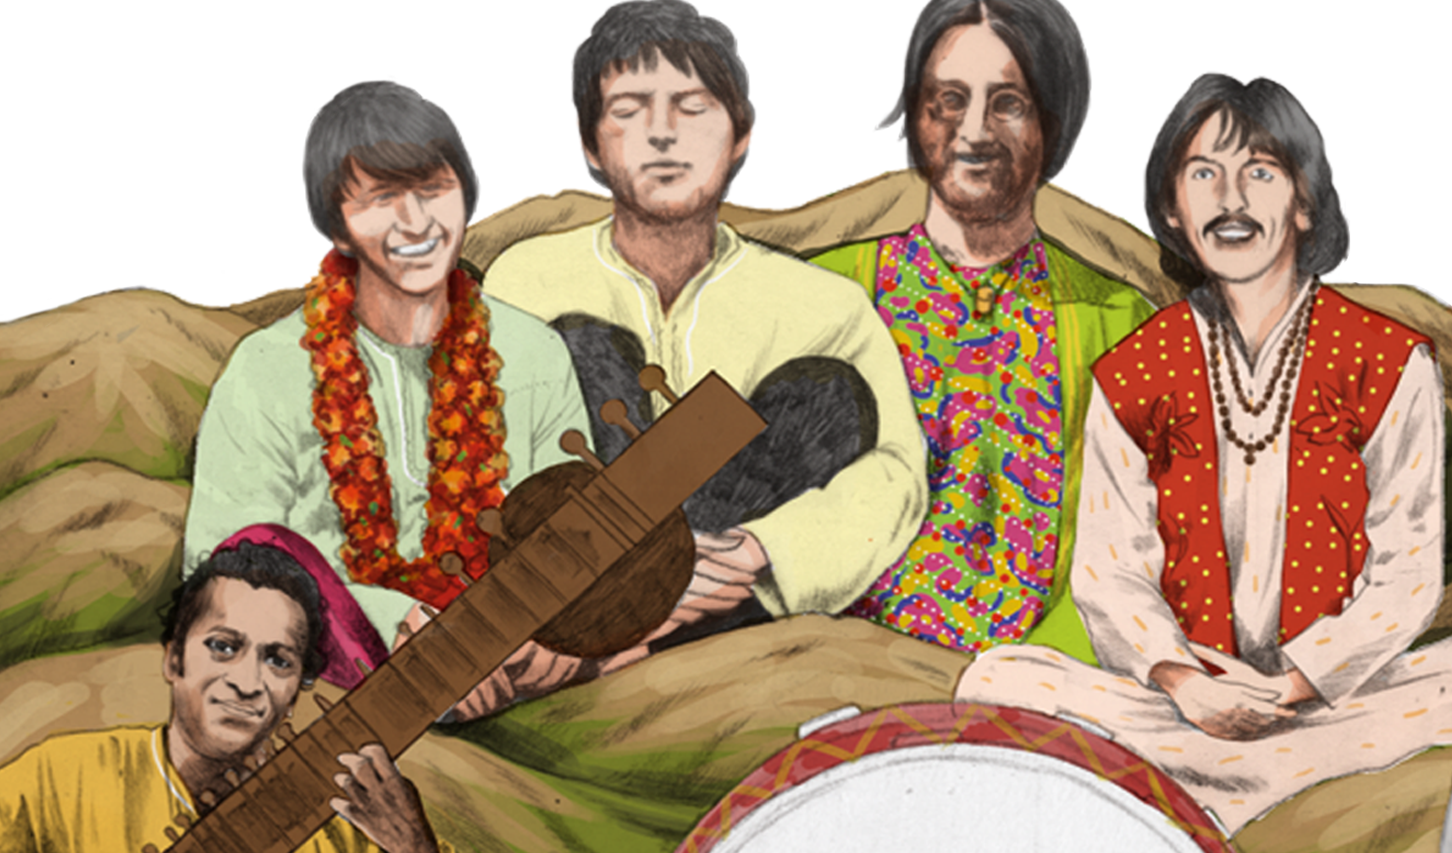 No hay imagen disponible de The Beatles en India